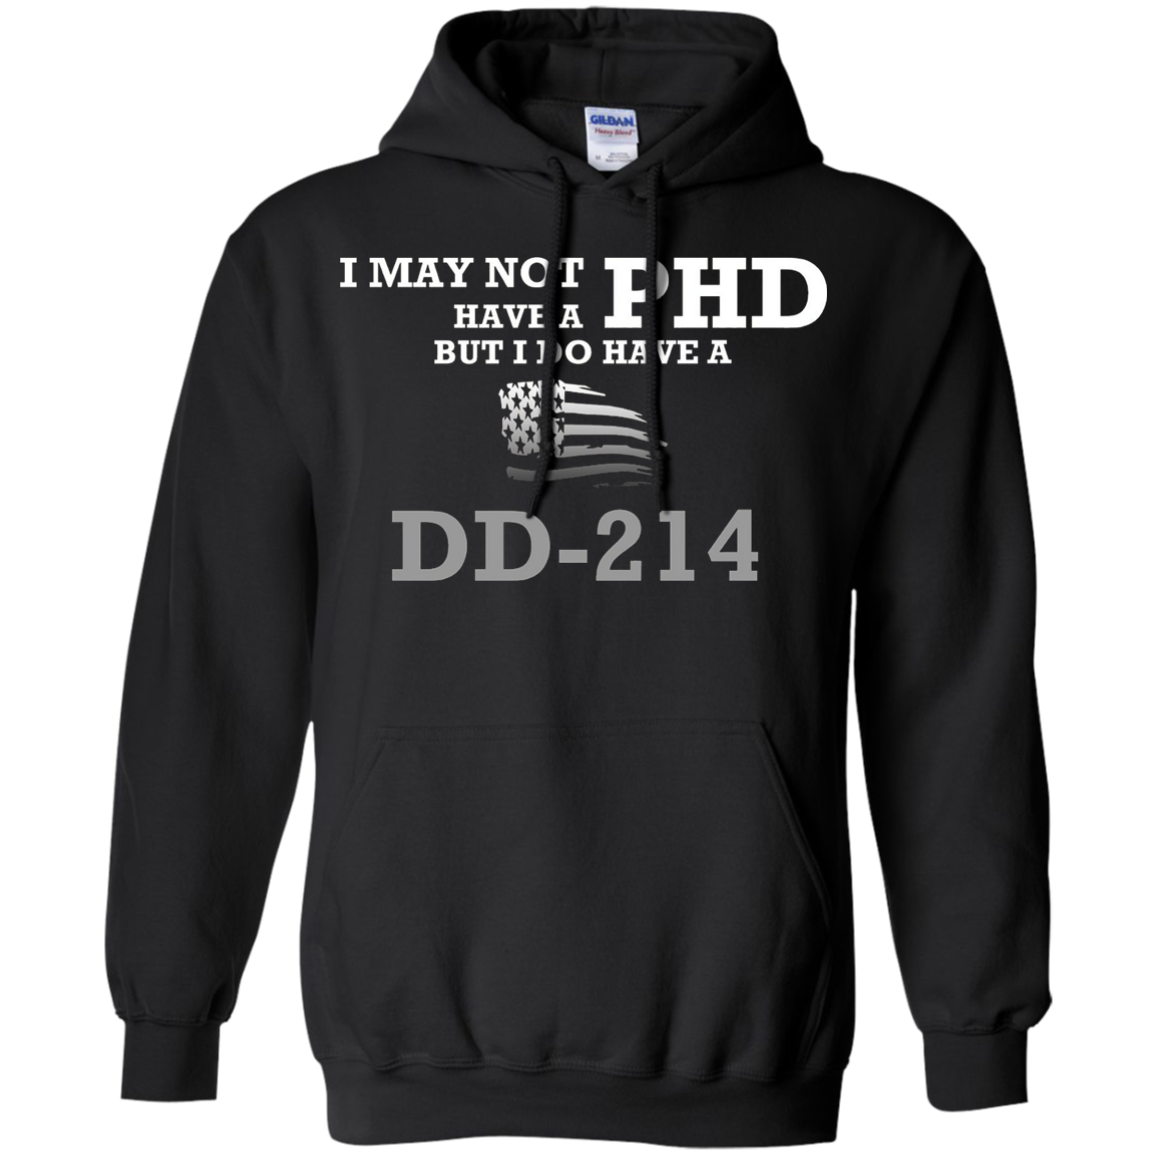 I May Not Have A PHD But I Do Have A DD-214 Veterans TShirt